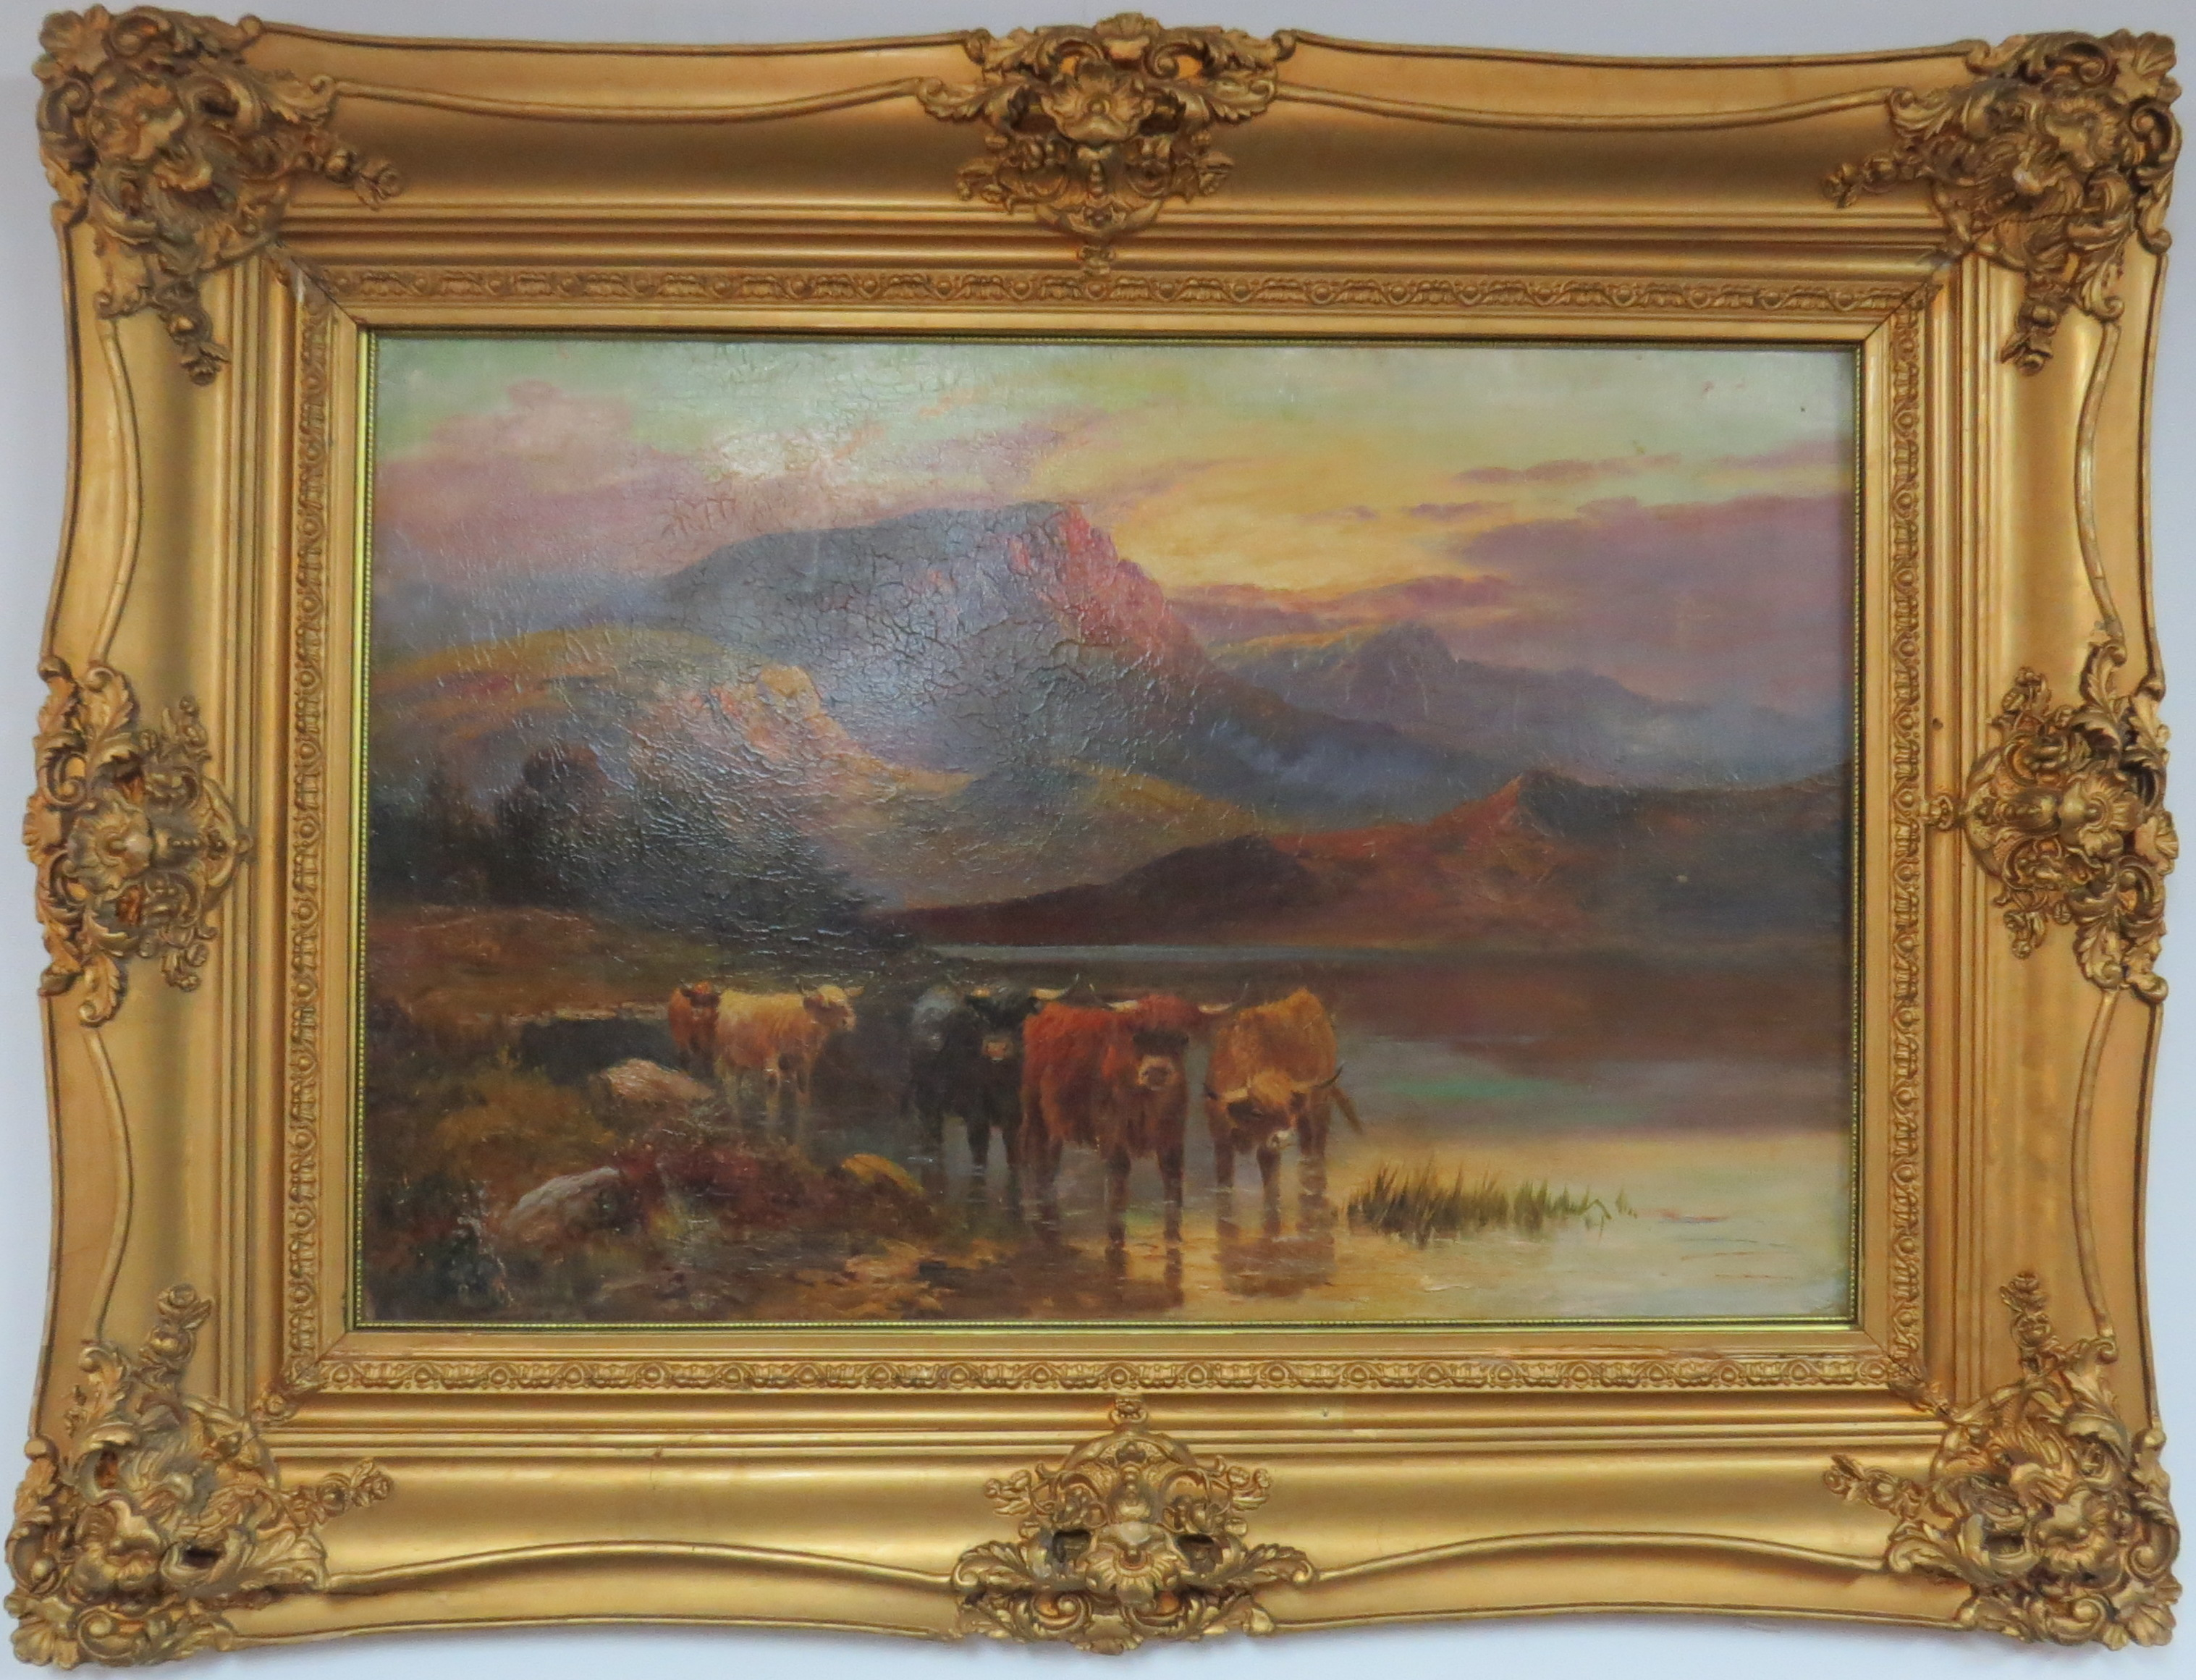 Oil on Panel of a Continental Landscape Scene, Signed Caldwell